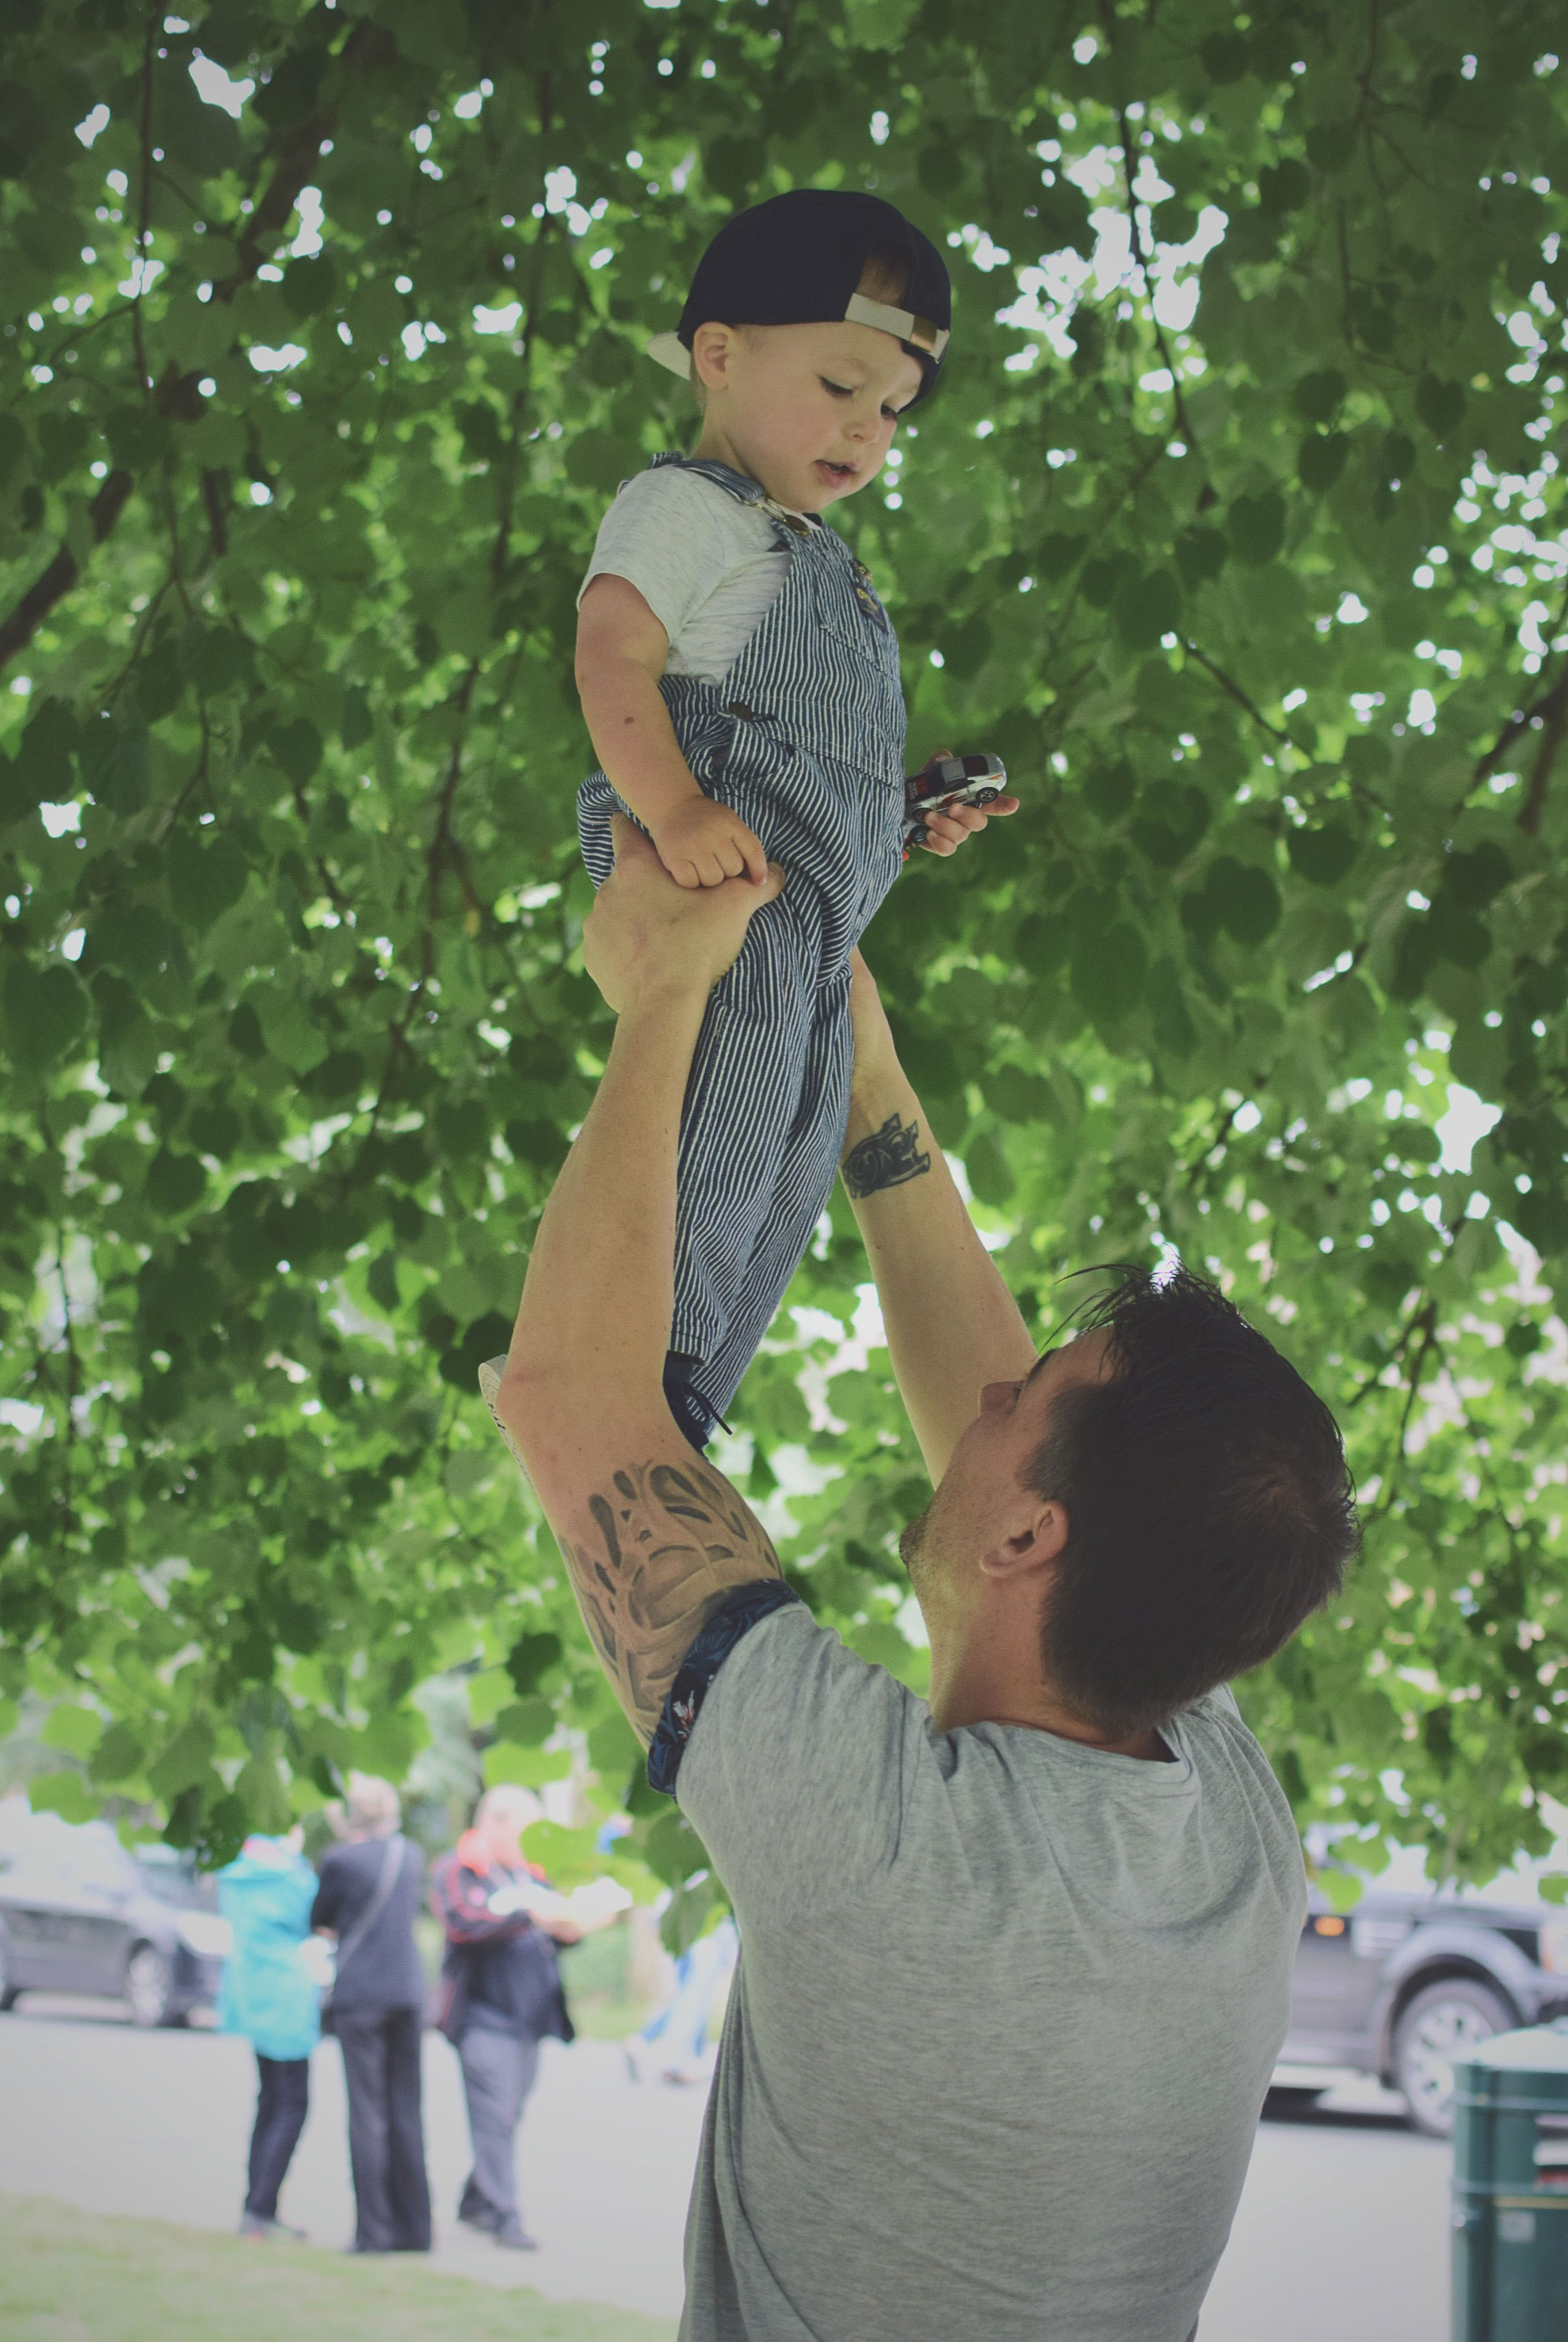 Celebrating the Daddies at Bourton-on-the-Water - Daddy holding toddler son in the air under a tree at Bourton-on-the-Water, Cotswolds